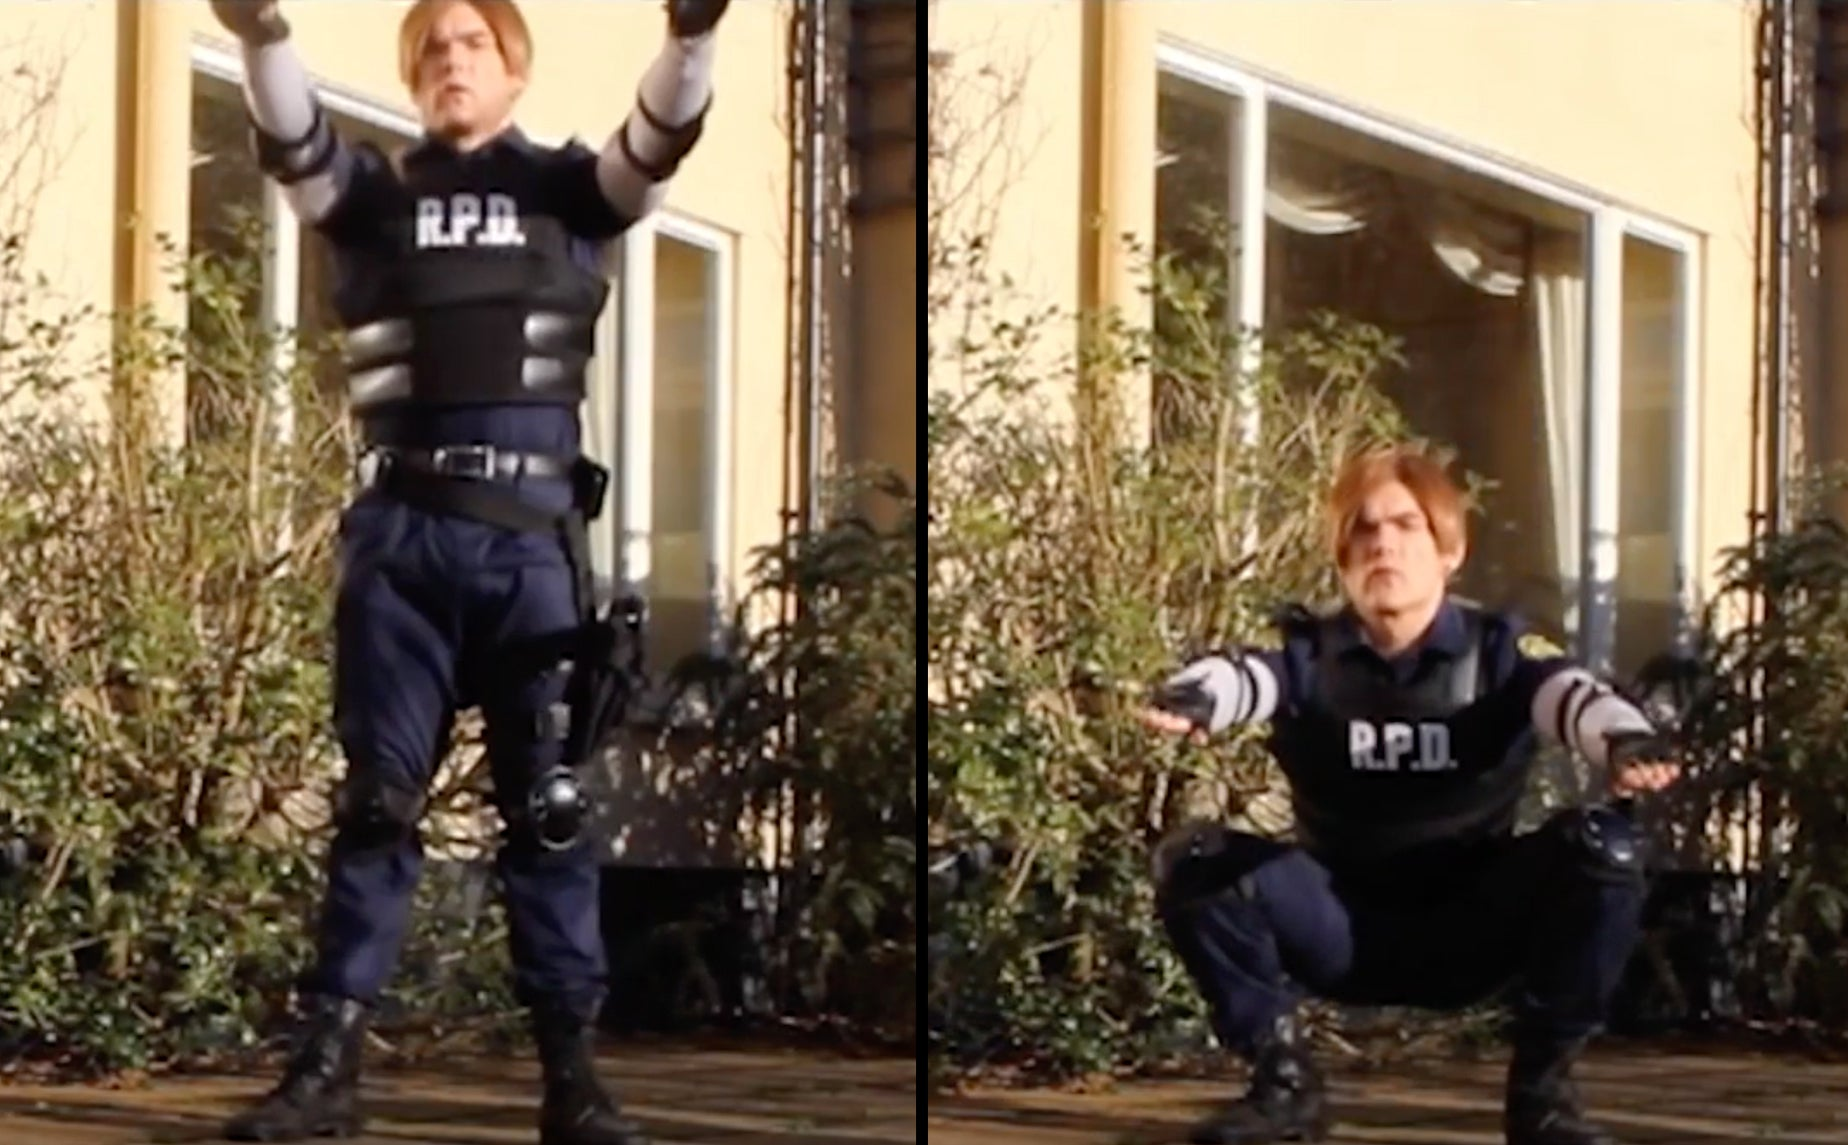 Leon S. Kennedy Resident Evil 2 Remake cosplay teaching the bodyweight squat for a raccoon city fitness workout